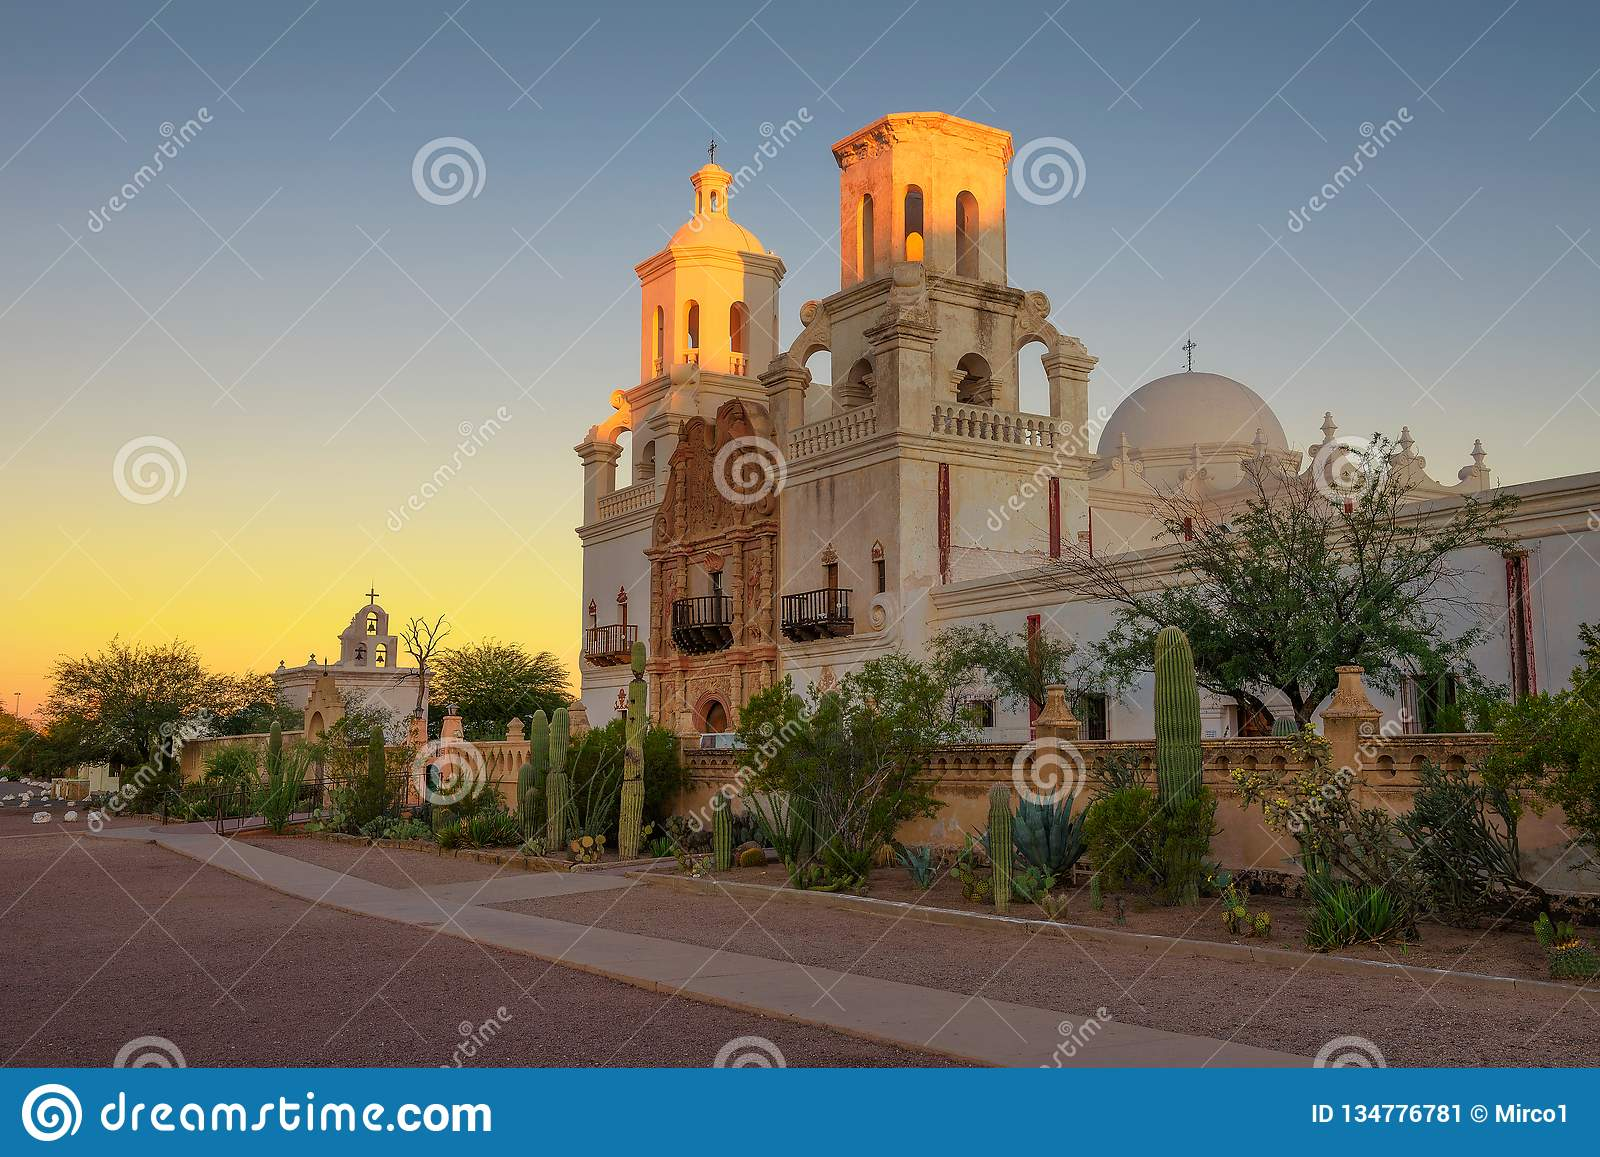 Sunrise at the San Xavier Mission Church in Tucson